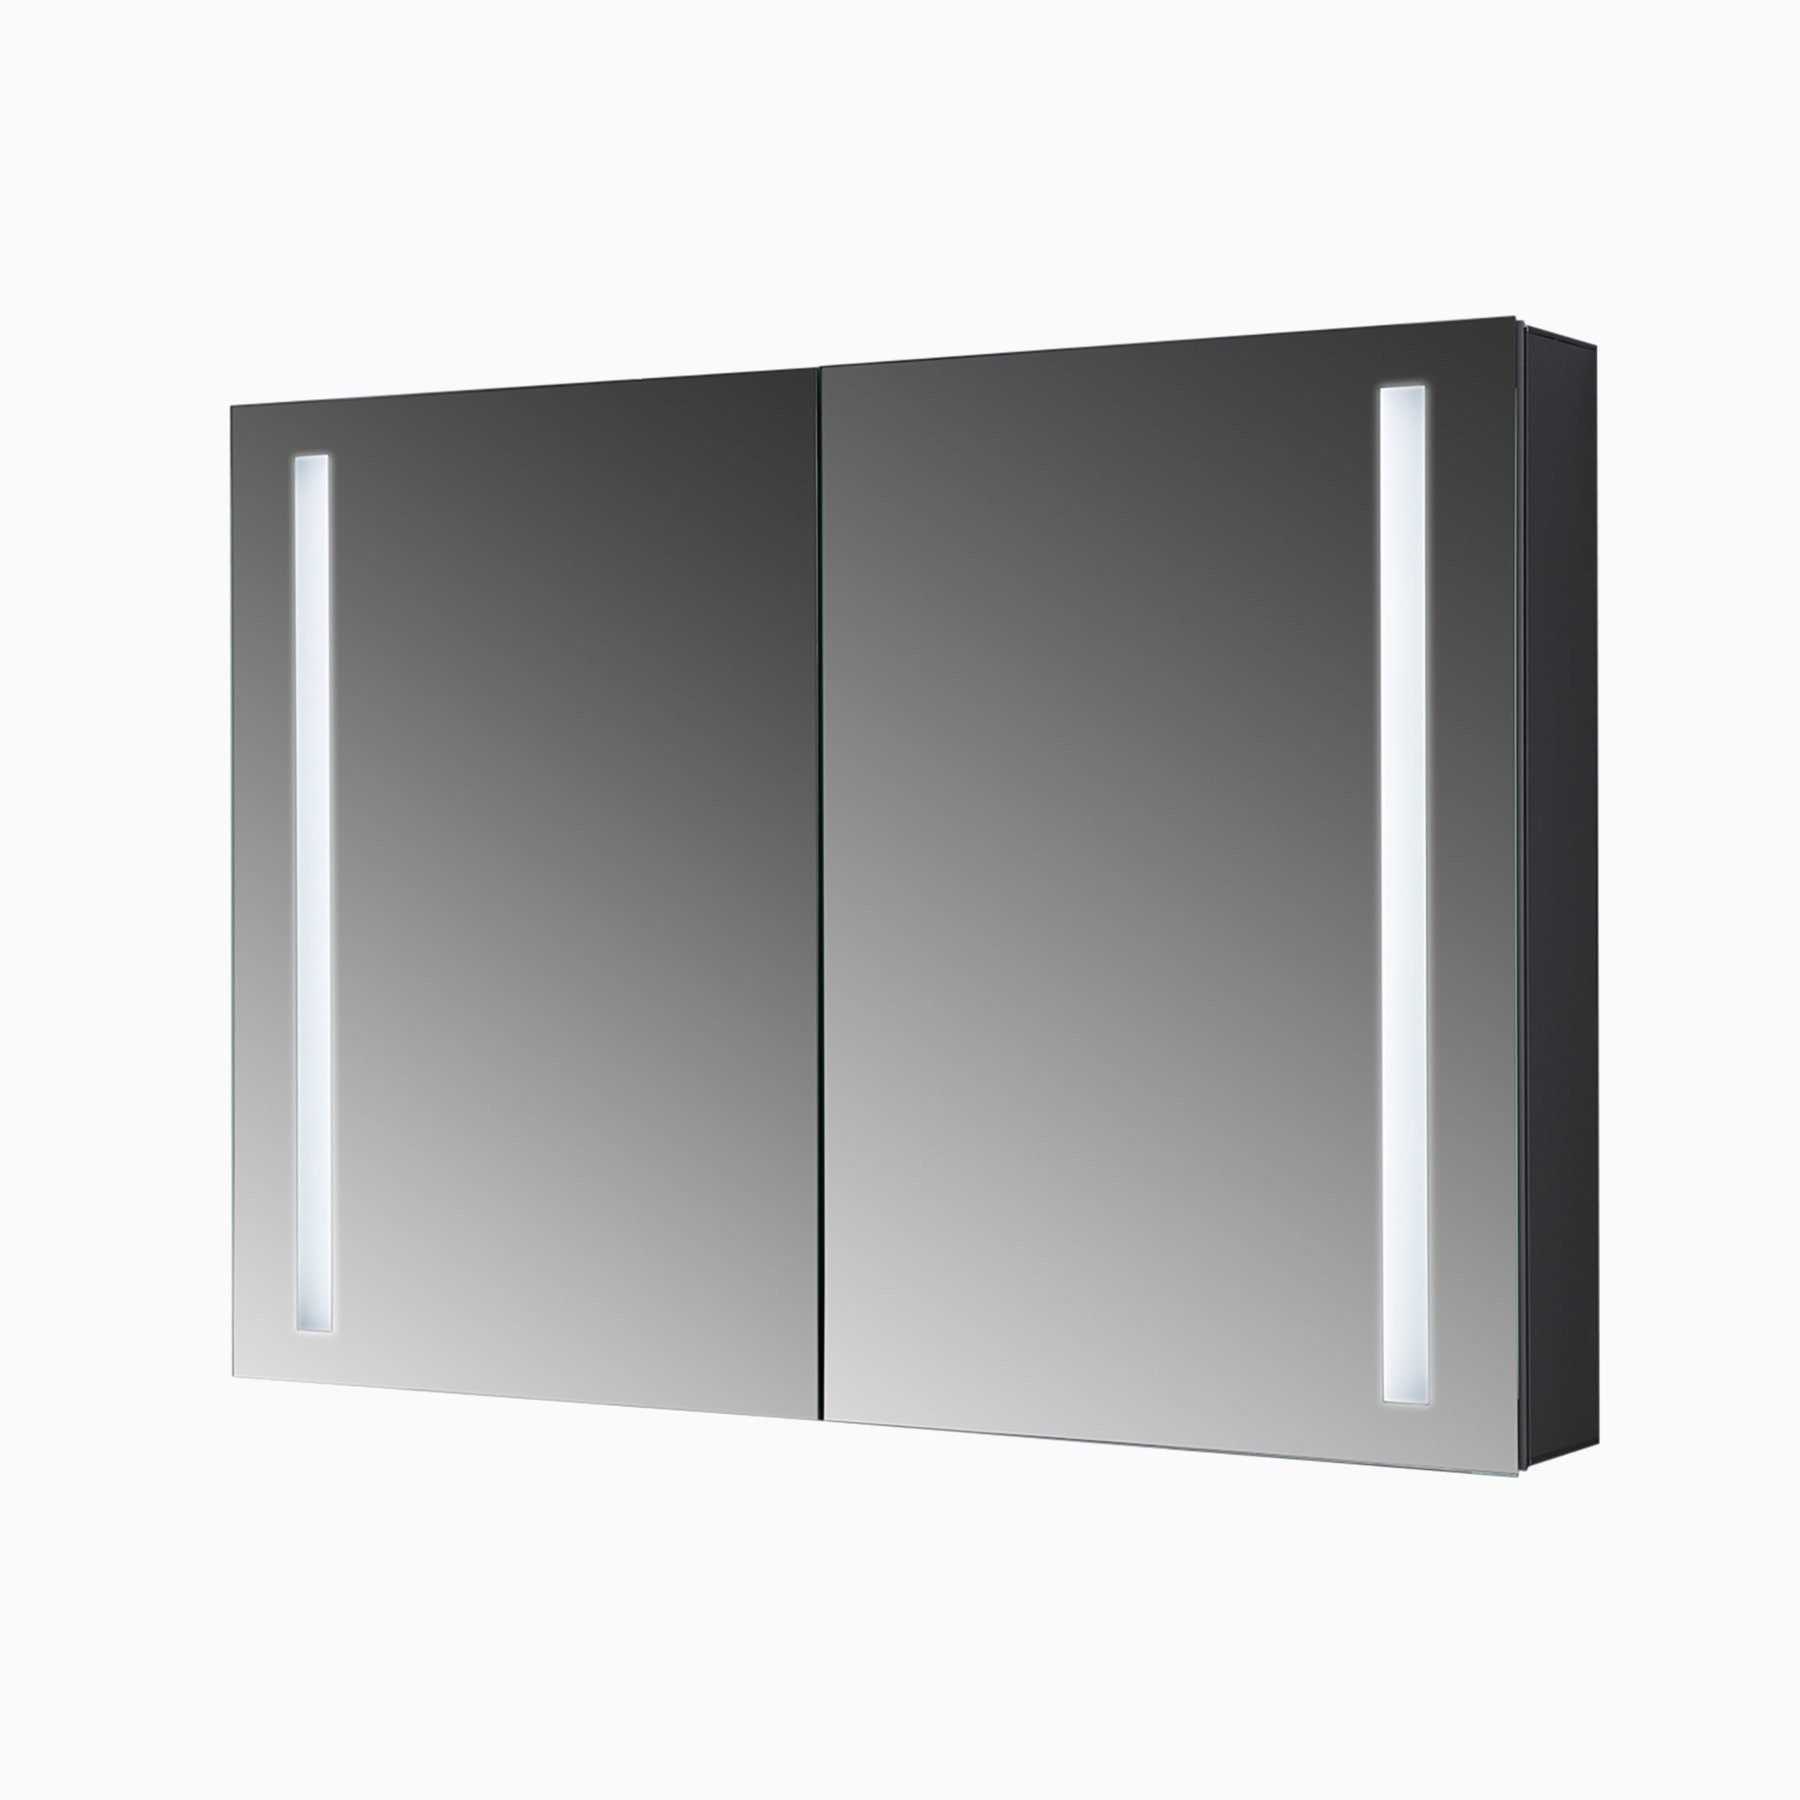 bailey  w x  h led mirrored medicine cabinet with  doors. bailey  inch w x  inch h led mirrored medicine cabinet with